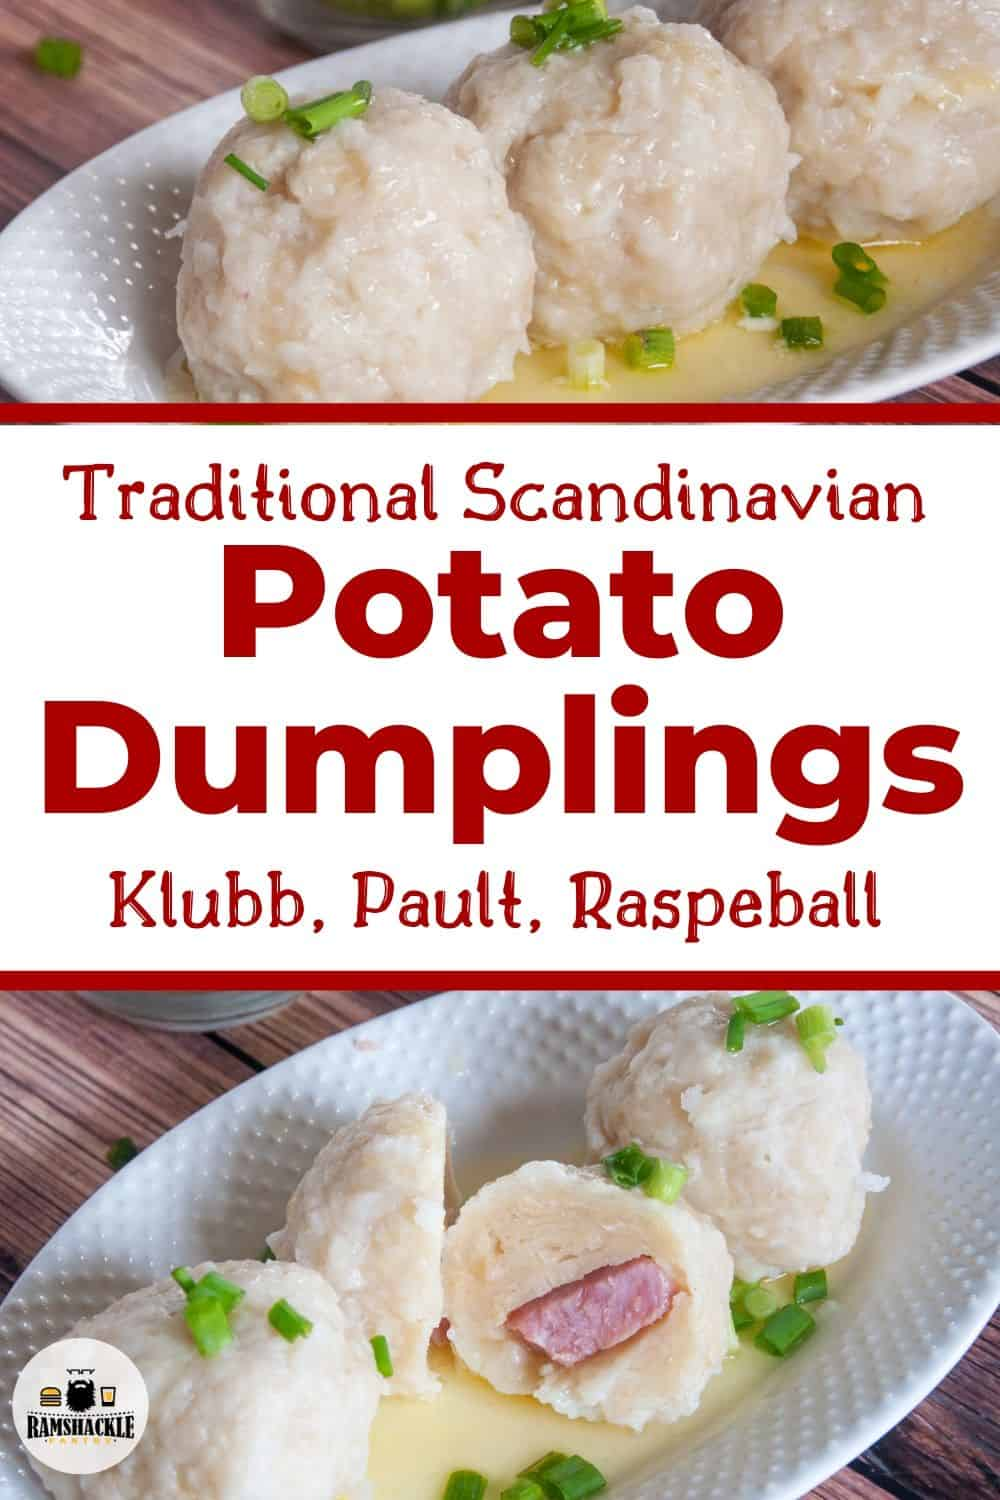 These Norwegian Potato Klubb Dumplings Are So Tasty Filling And A Great Way To Celebrate Scandinavia Whether Klubb Recipe Norwegian Cuisine Potato Dumplings